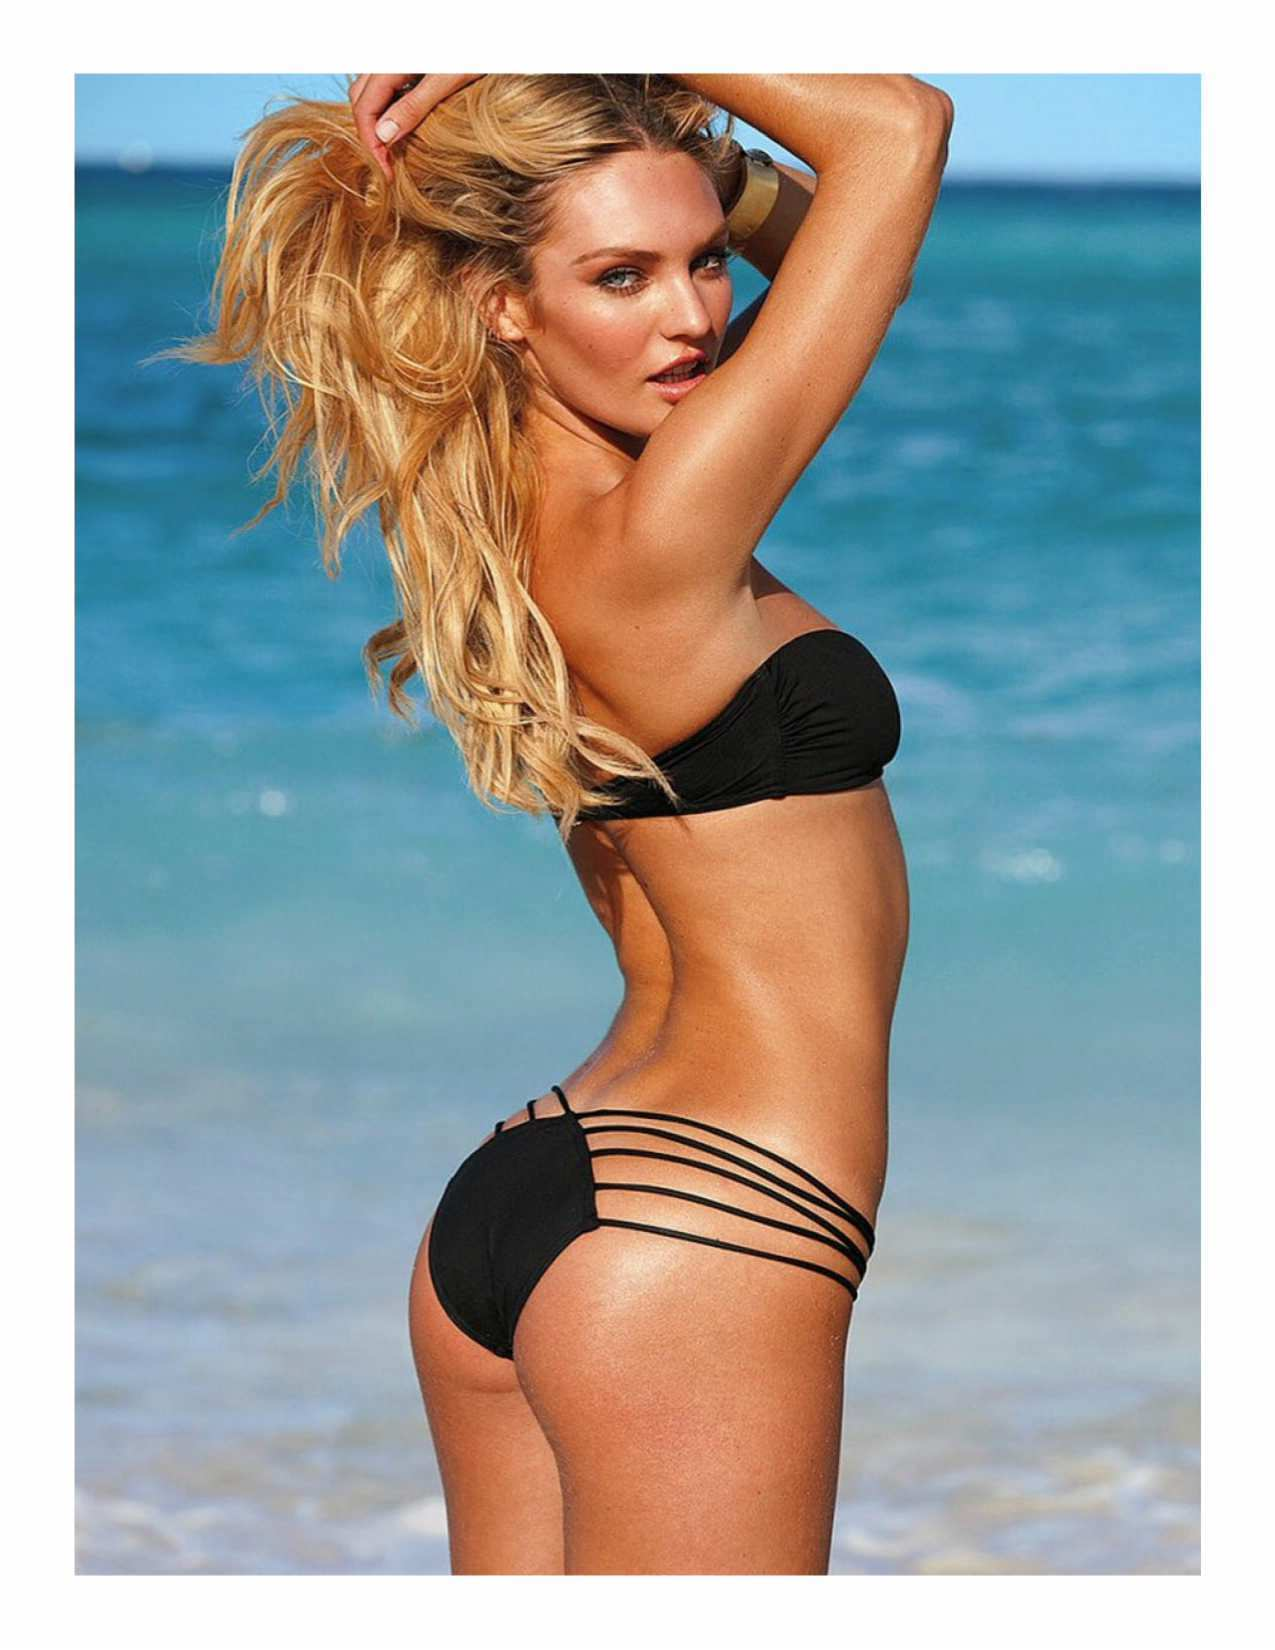 Candice Swanepoel - CoverGirl Magazine Lingerie Photos - Sexy Actress Pictures | Hot Actress Pictures - ActressSnaps.com